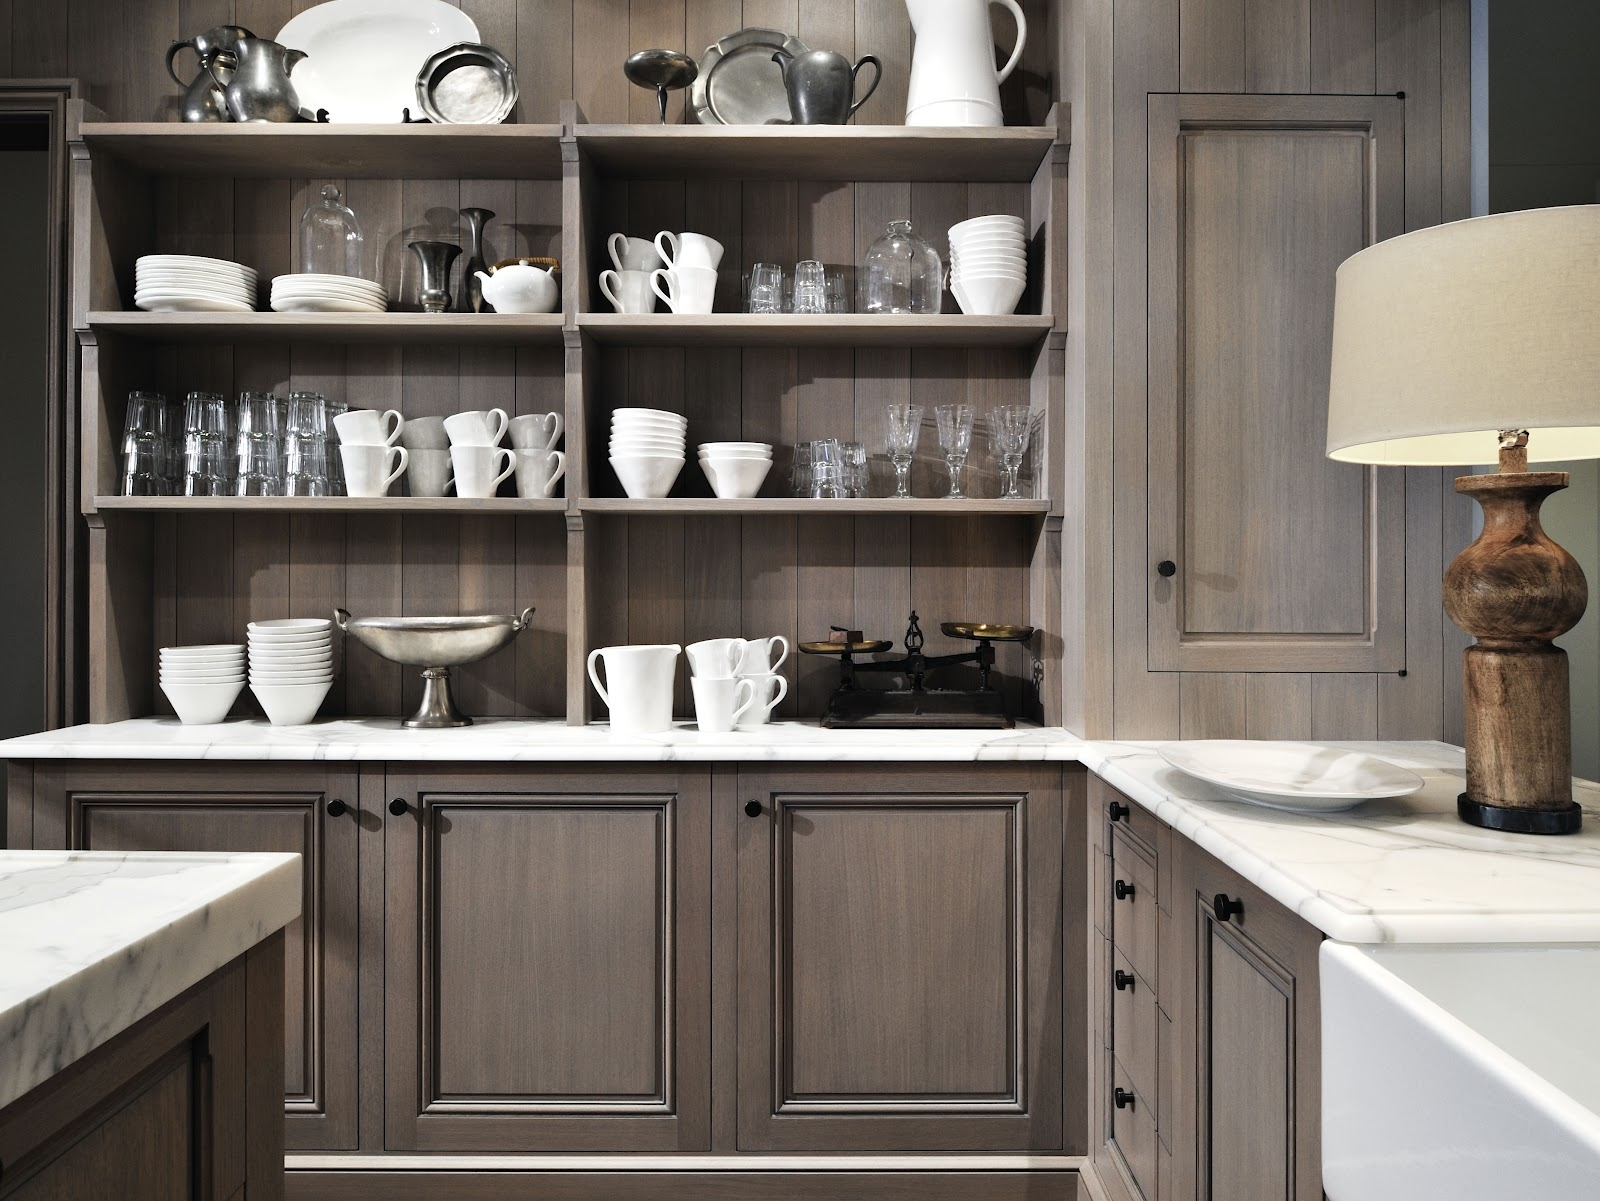 Size Of Tall Kitchen Cabinets Kitchen Cabinet